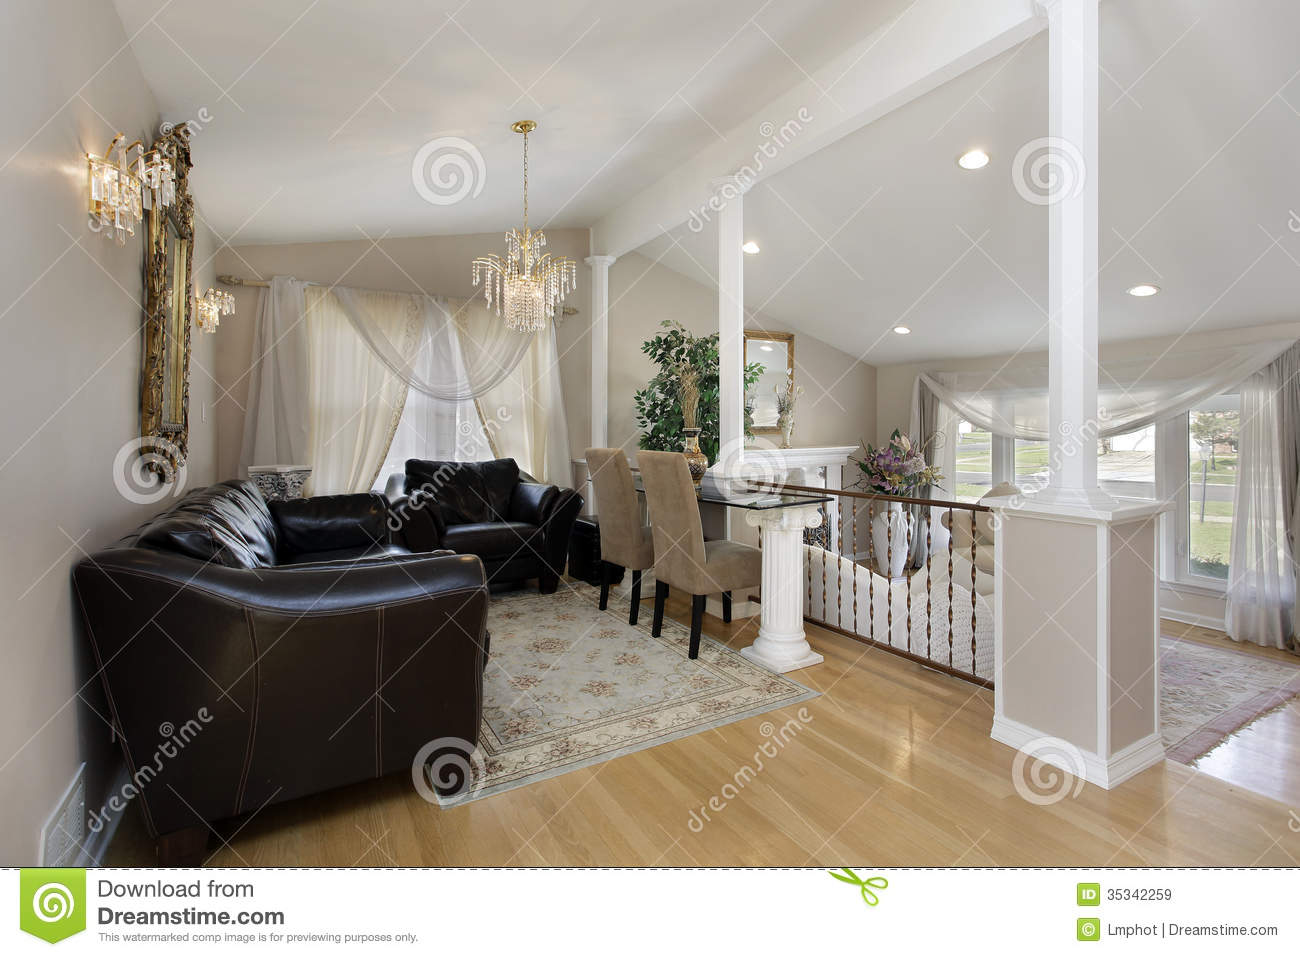 Dining room with columns stock image. Image of design - 35342259